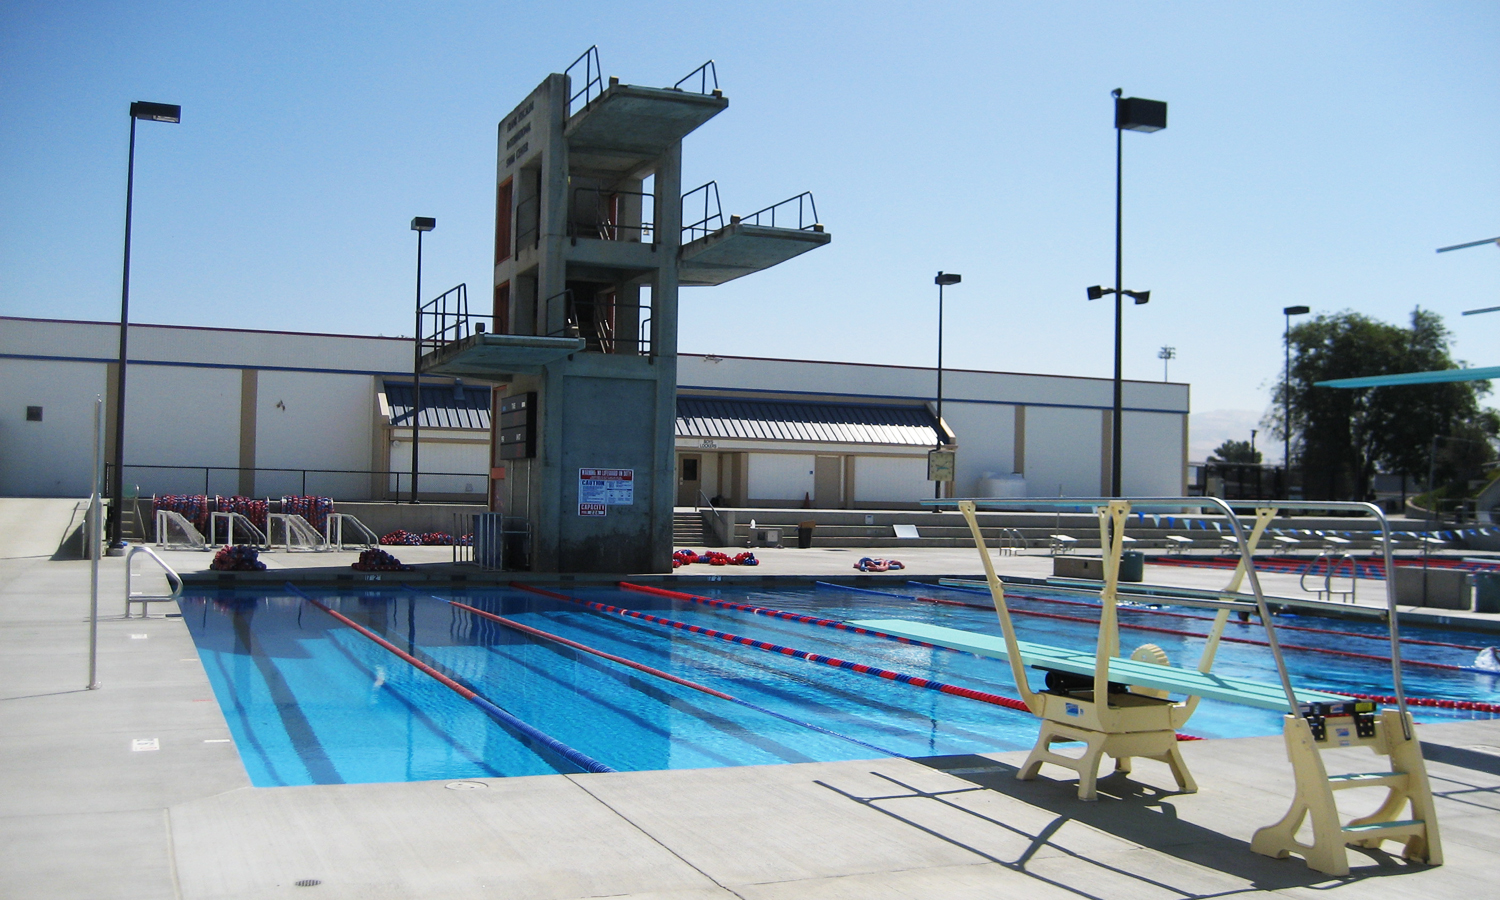 Independence high school pool renovation gonsalves stronck Public swimming pools san jose california